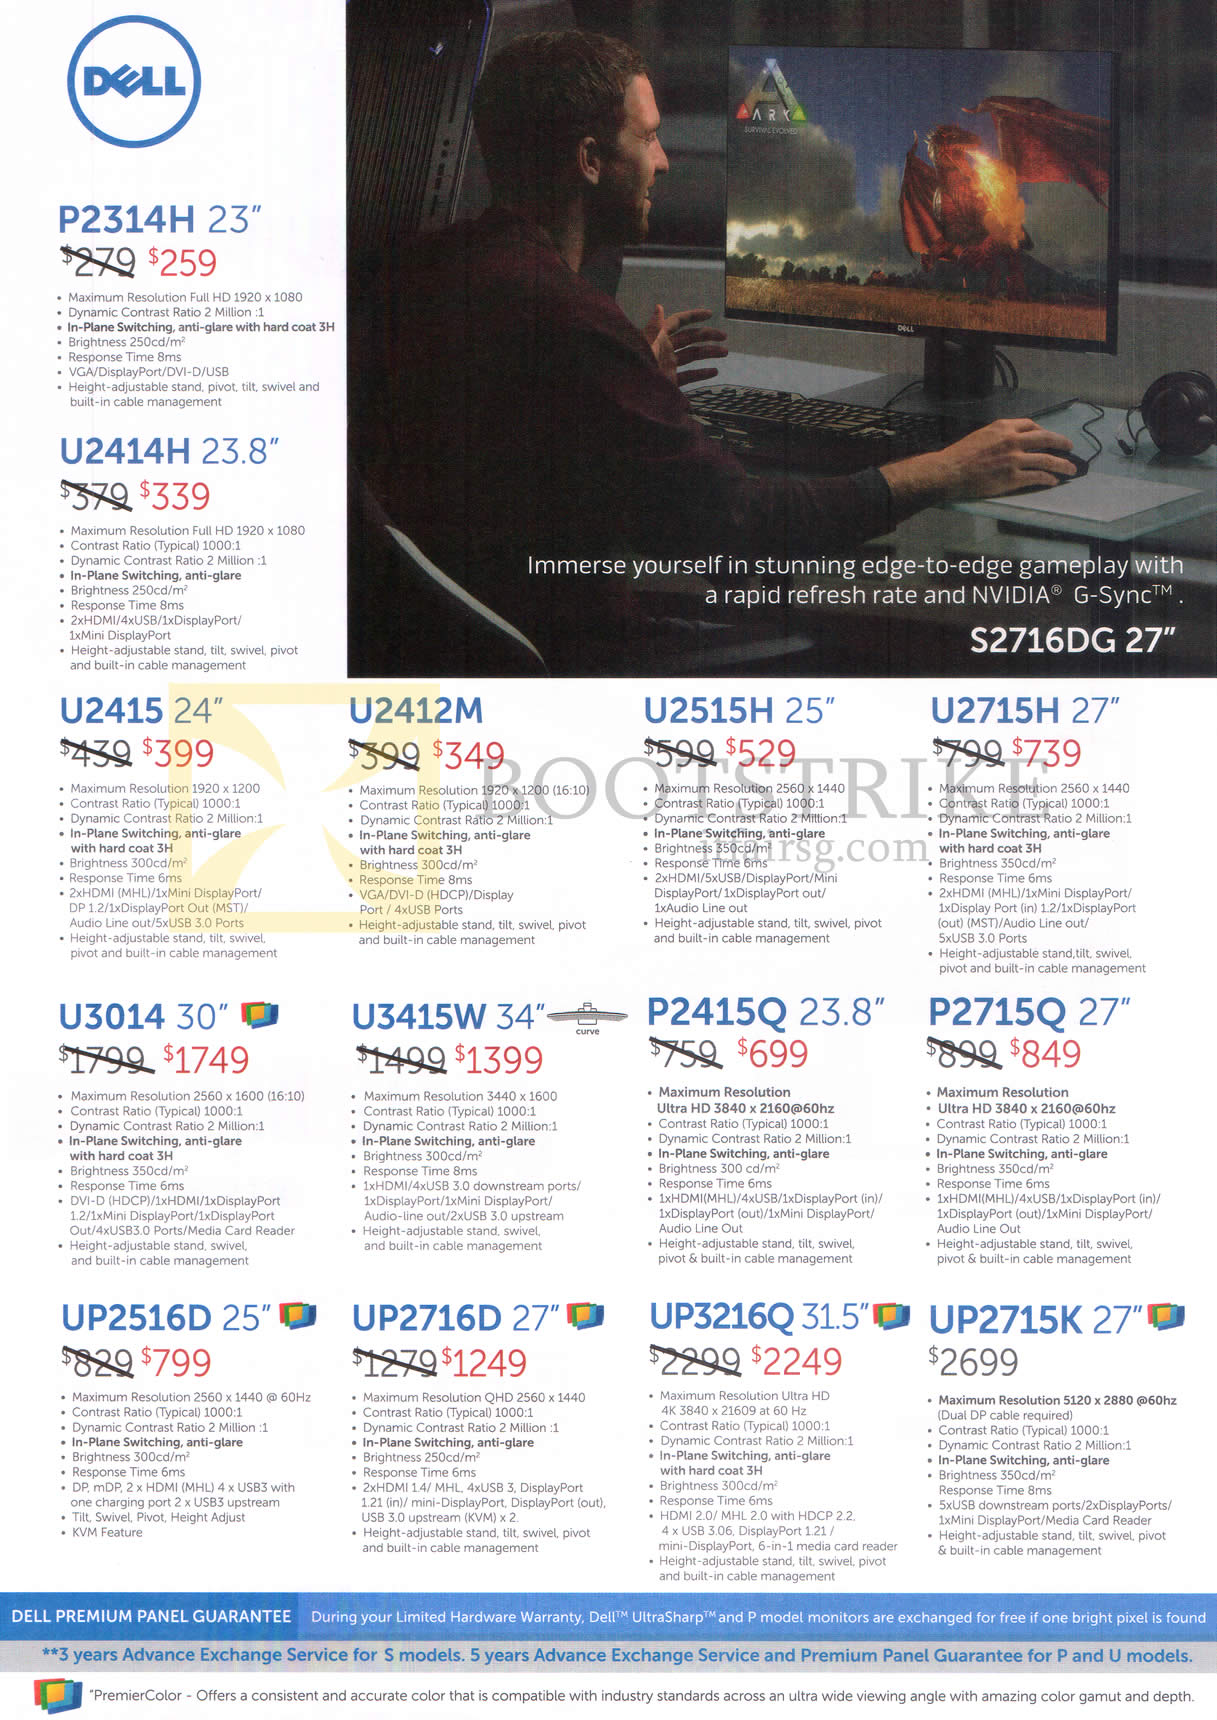 SITEX 2015 price list image brochure of Dell Monitors P2314H, U2414H, U2415, U2412M, U2515, U2715H, U3014, U3415W, P2415Q, P2715Q, UIP2516D, UP2716D, UP3216Q, UP2715K